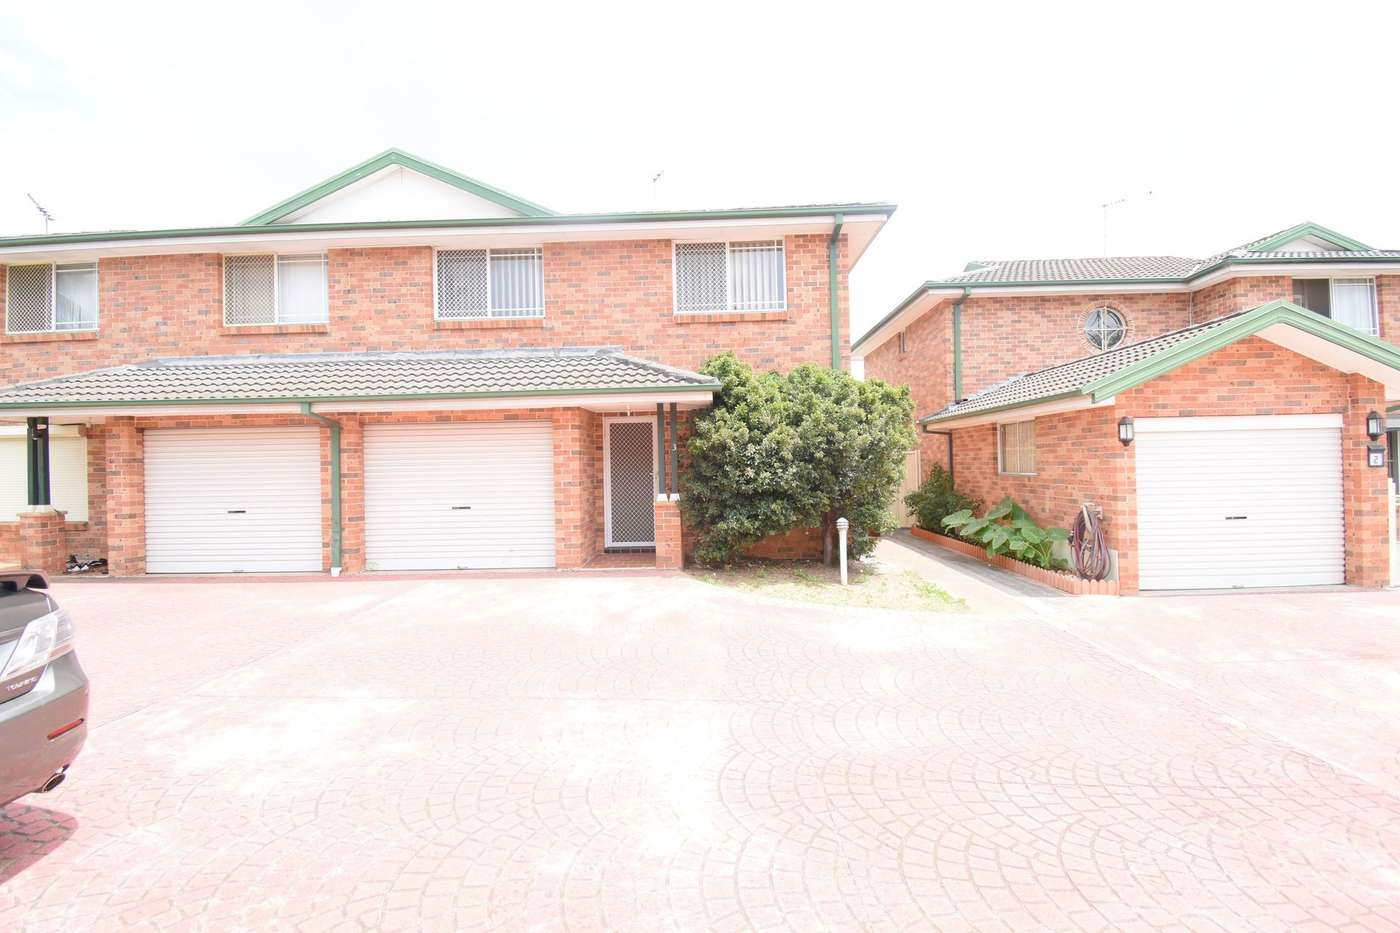 Main view of Homely townhouse listing, 3/33-39 Avoca Road, Canley Heights, NSW 2166